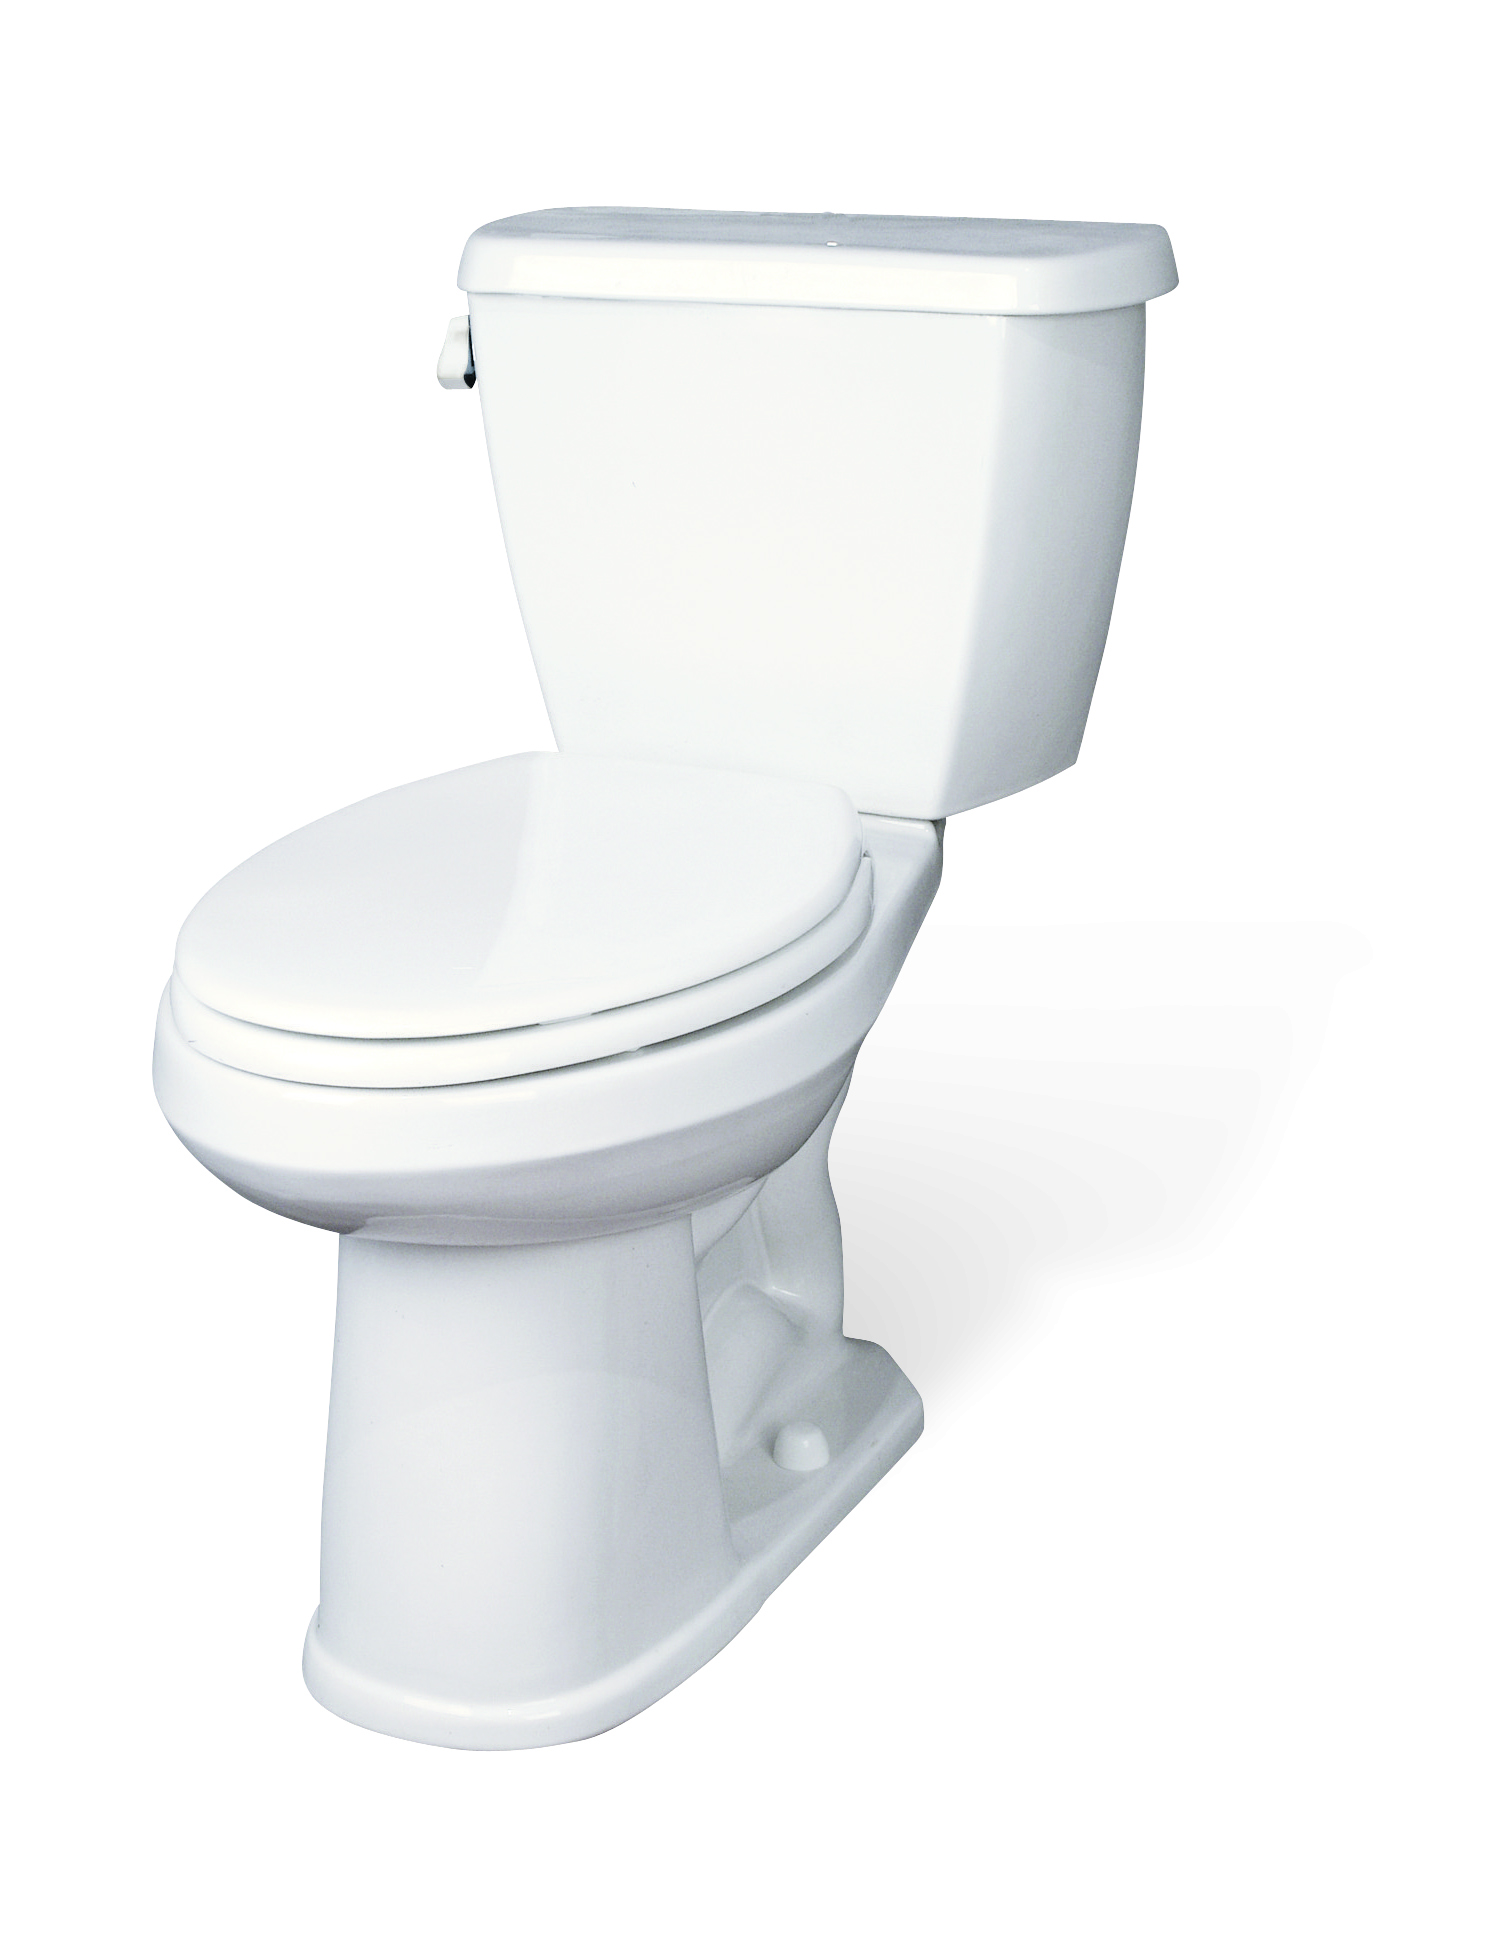 Avalanche 1 6 gpf 12 rough in two piece elongated toilet for Gerbiere toit